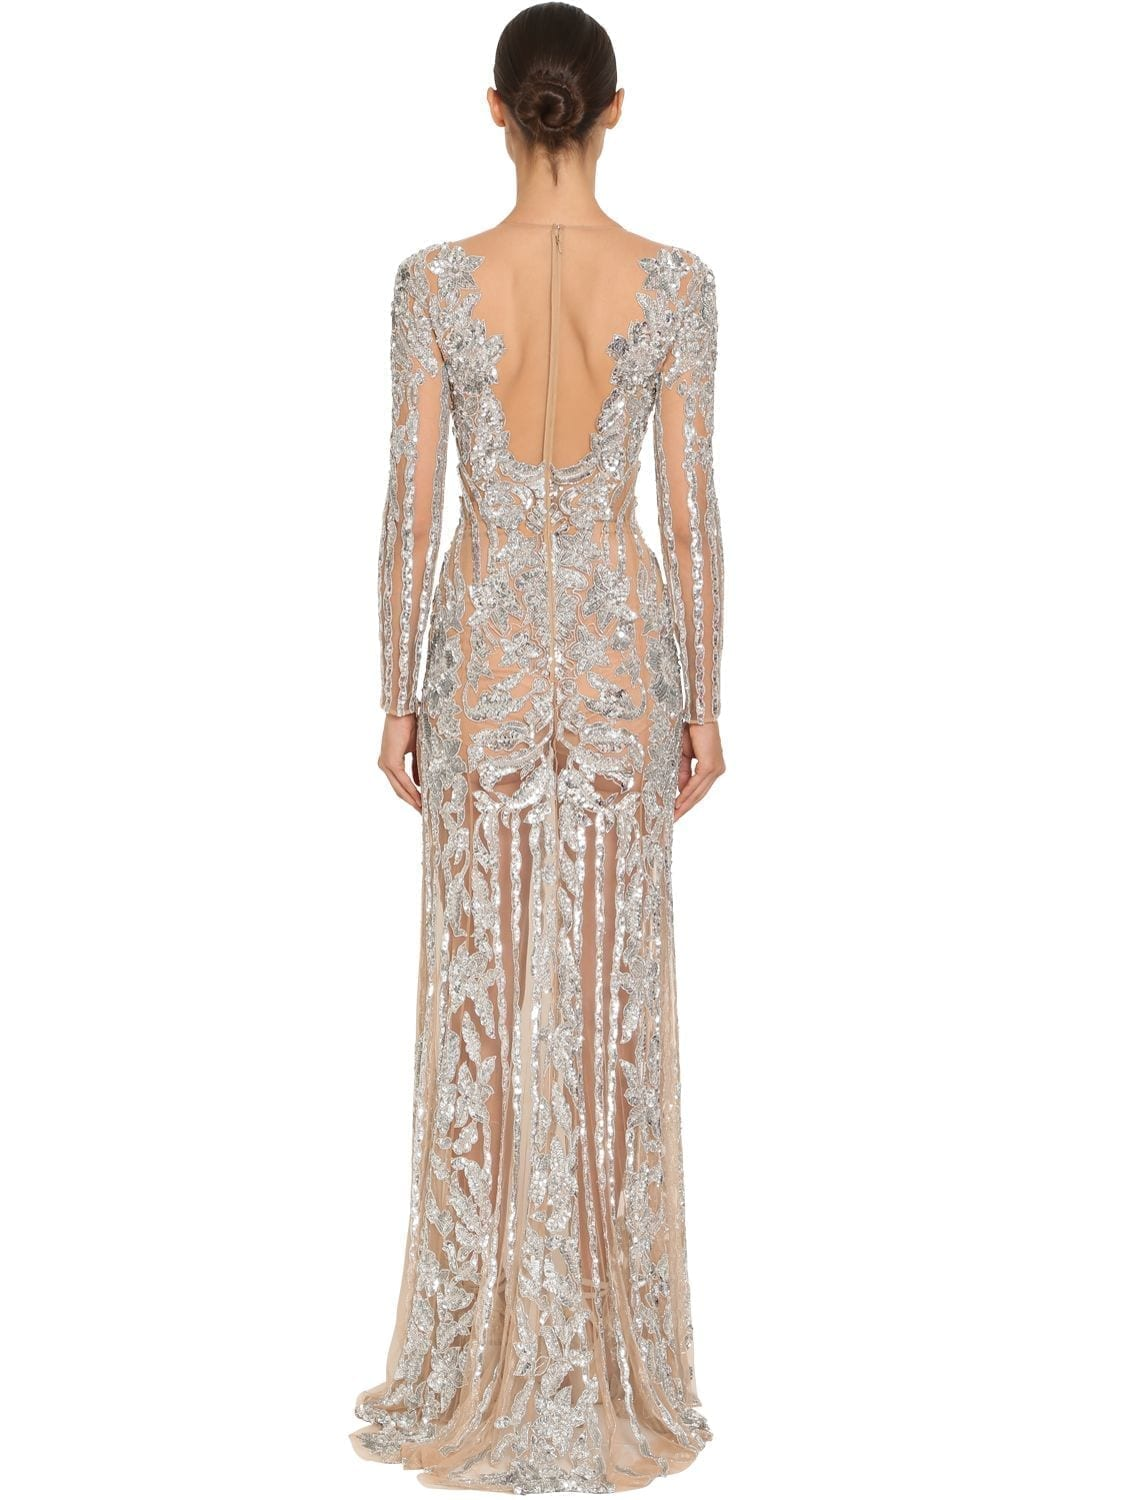 dc616f5d65d ZUHAIR MURAD Embroidered Stretch Tulle Dress - We Select Dresses